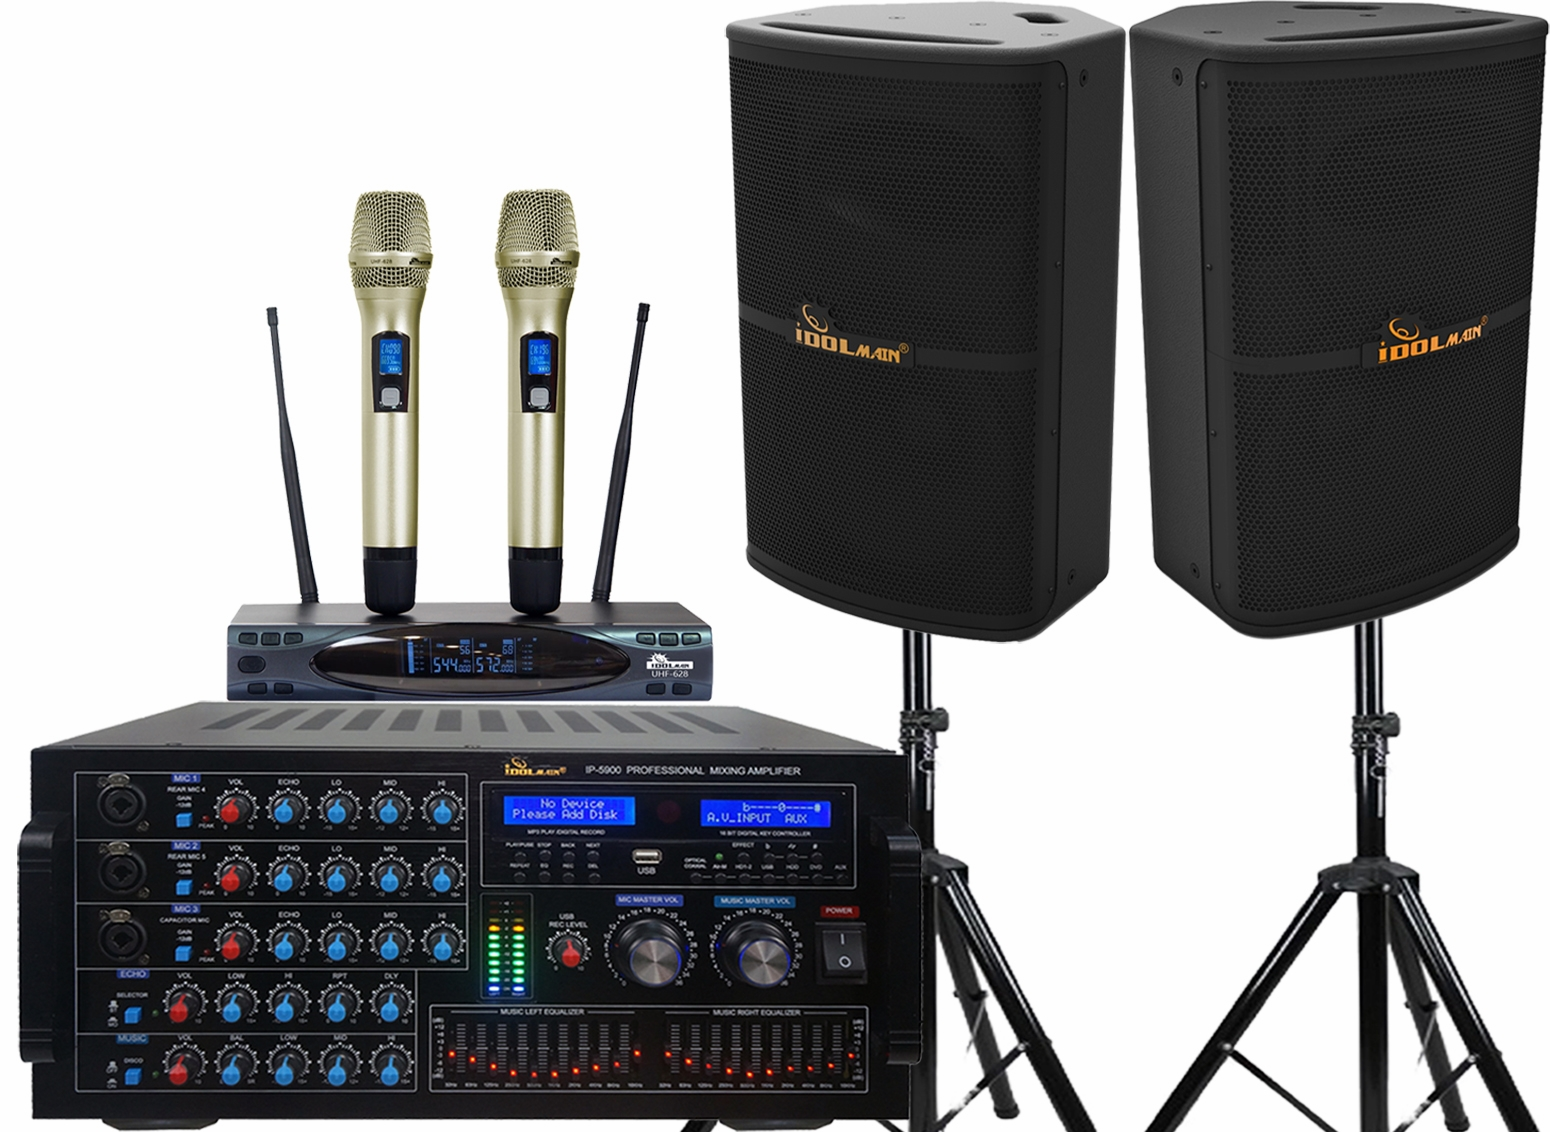 "<font color="" blue"">PACKAGE 5 </font>--IPS-P10 Speakers & UHF-628 Microphone & IP-5900 Mixing Amplifier"